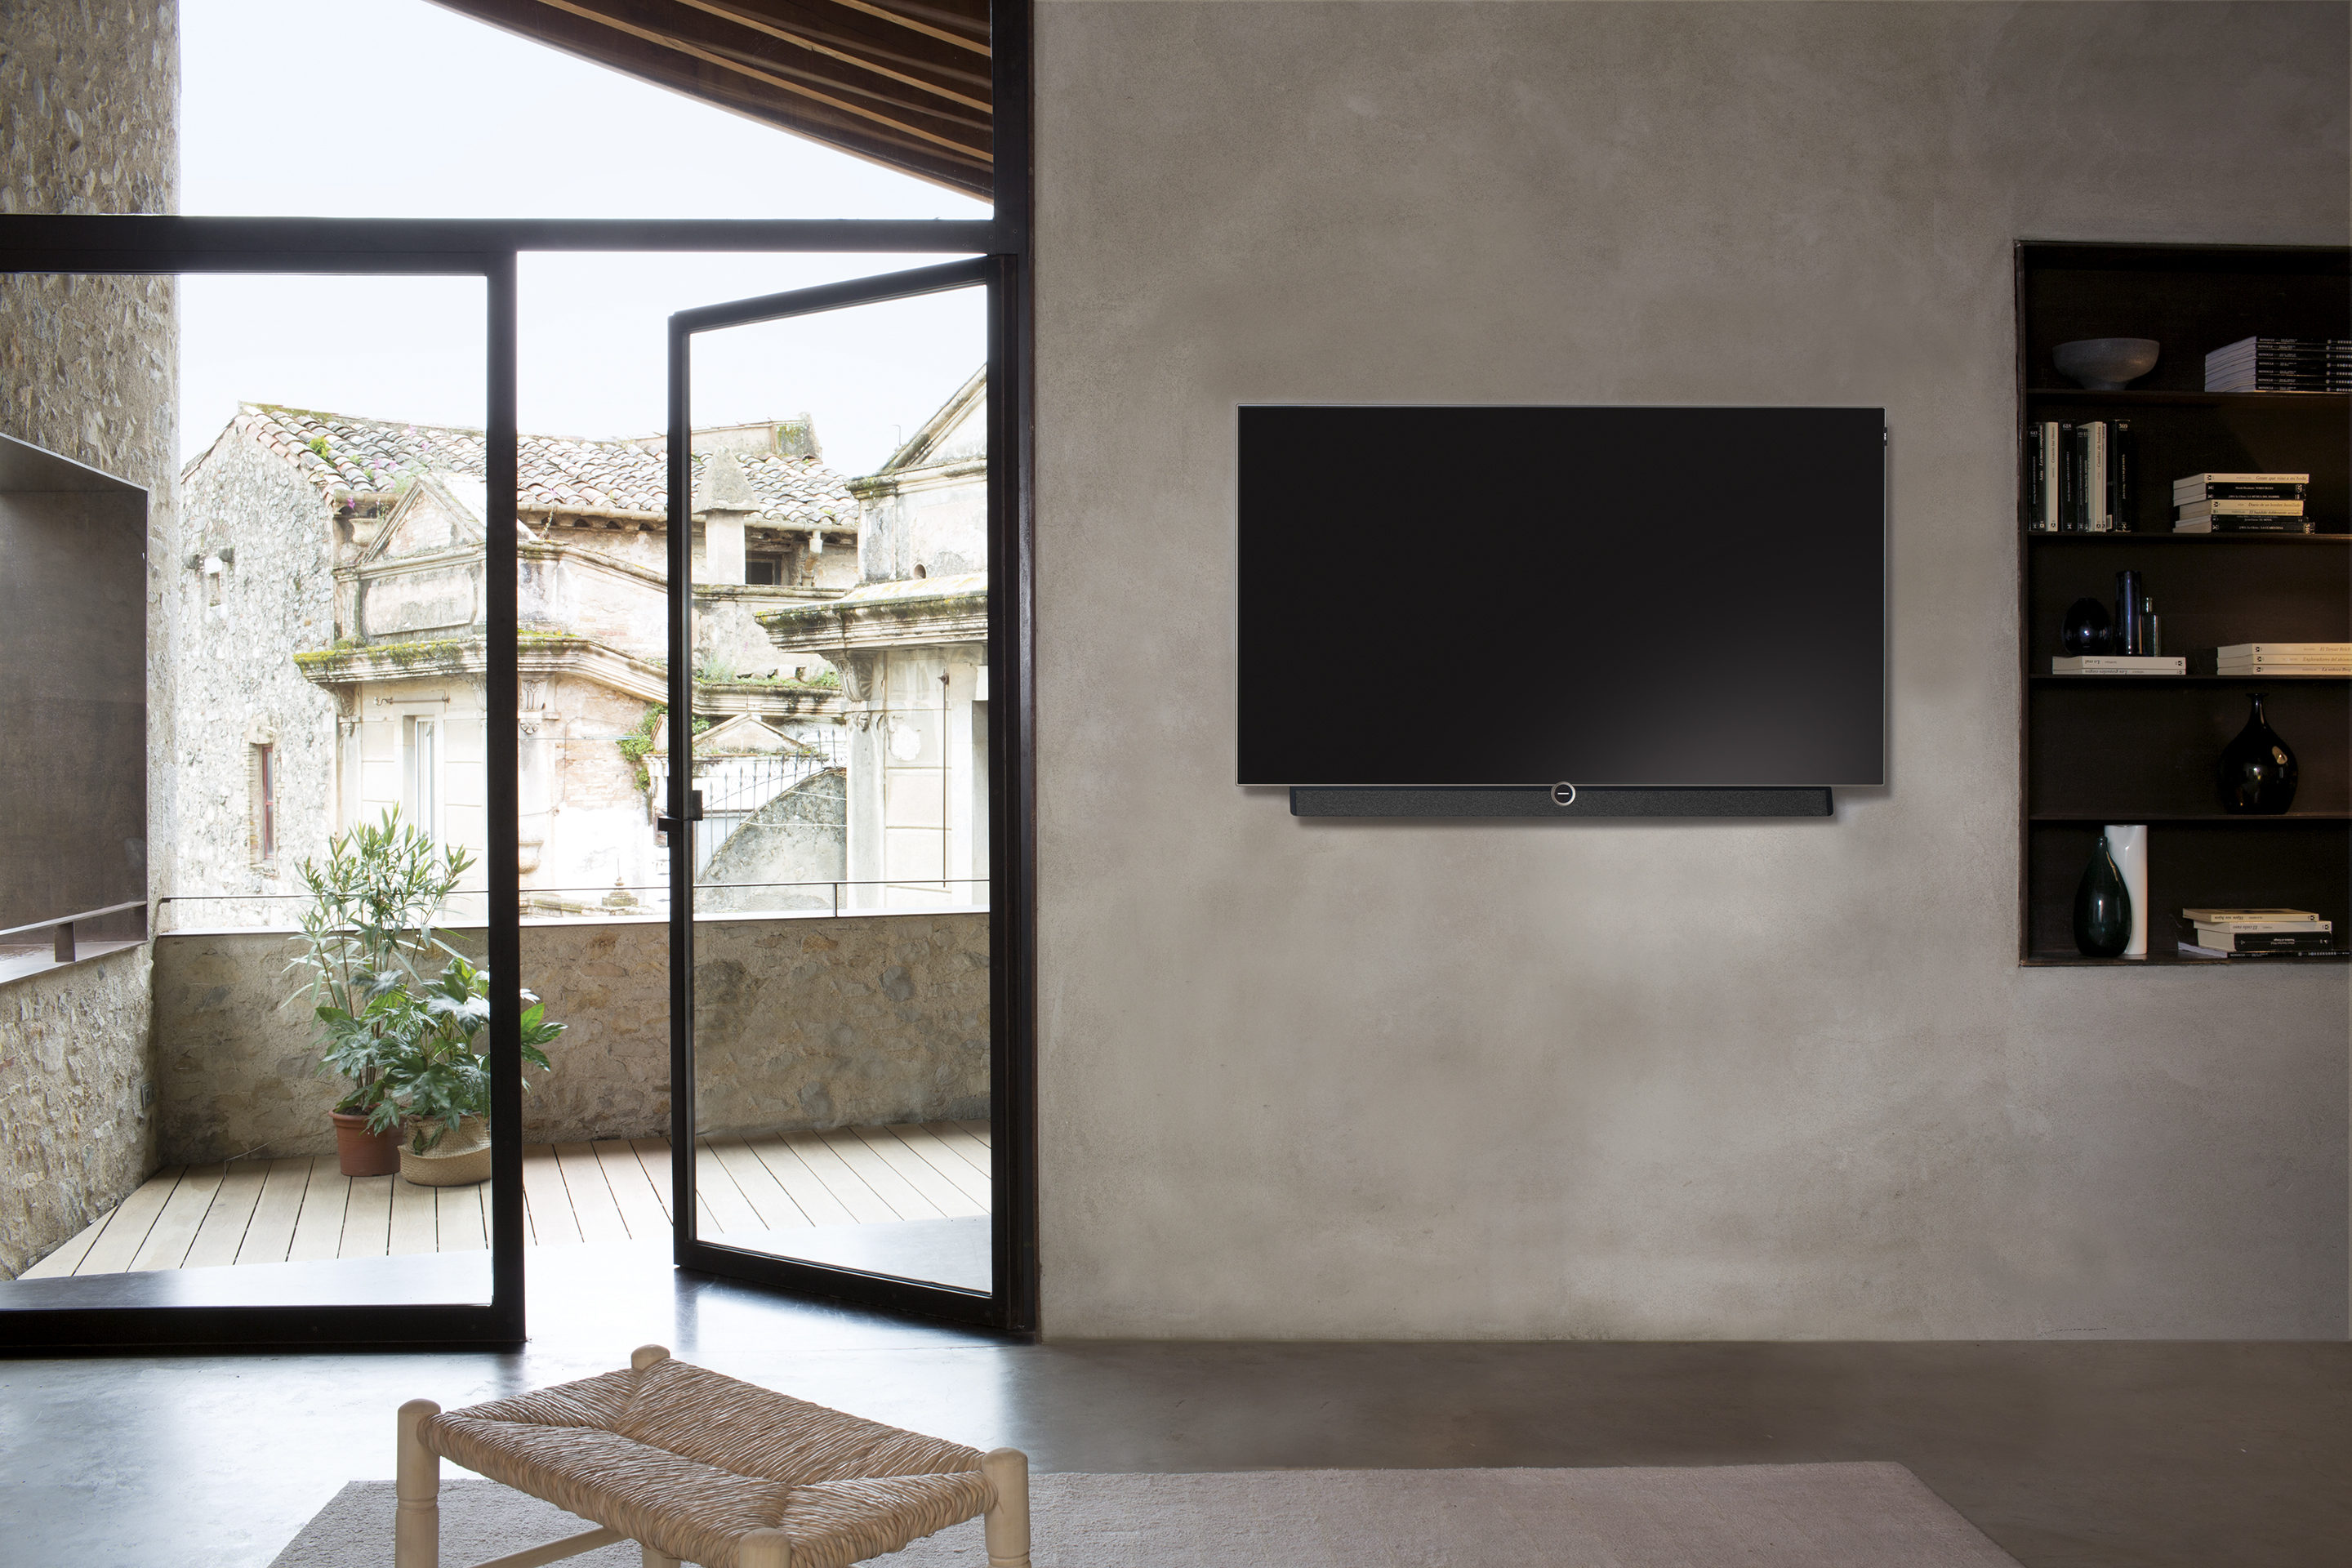 Loewe Bild 5.65 | Vogel's collaboration with motorized wall mount